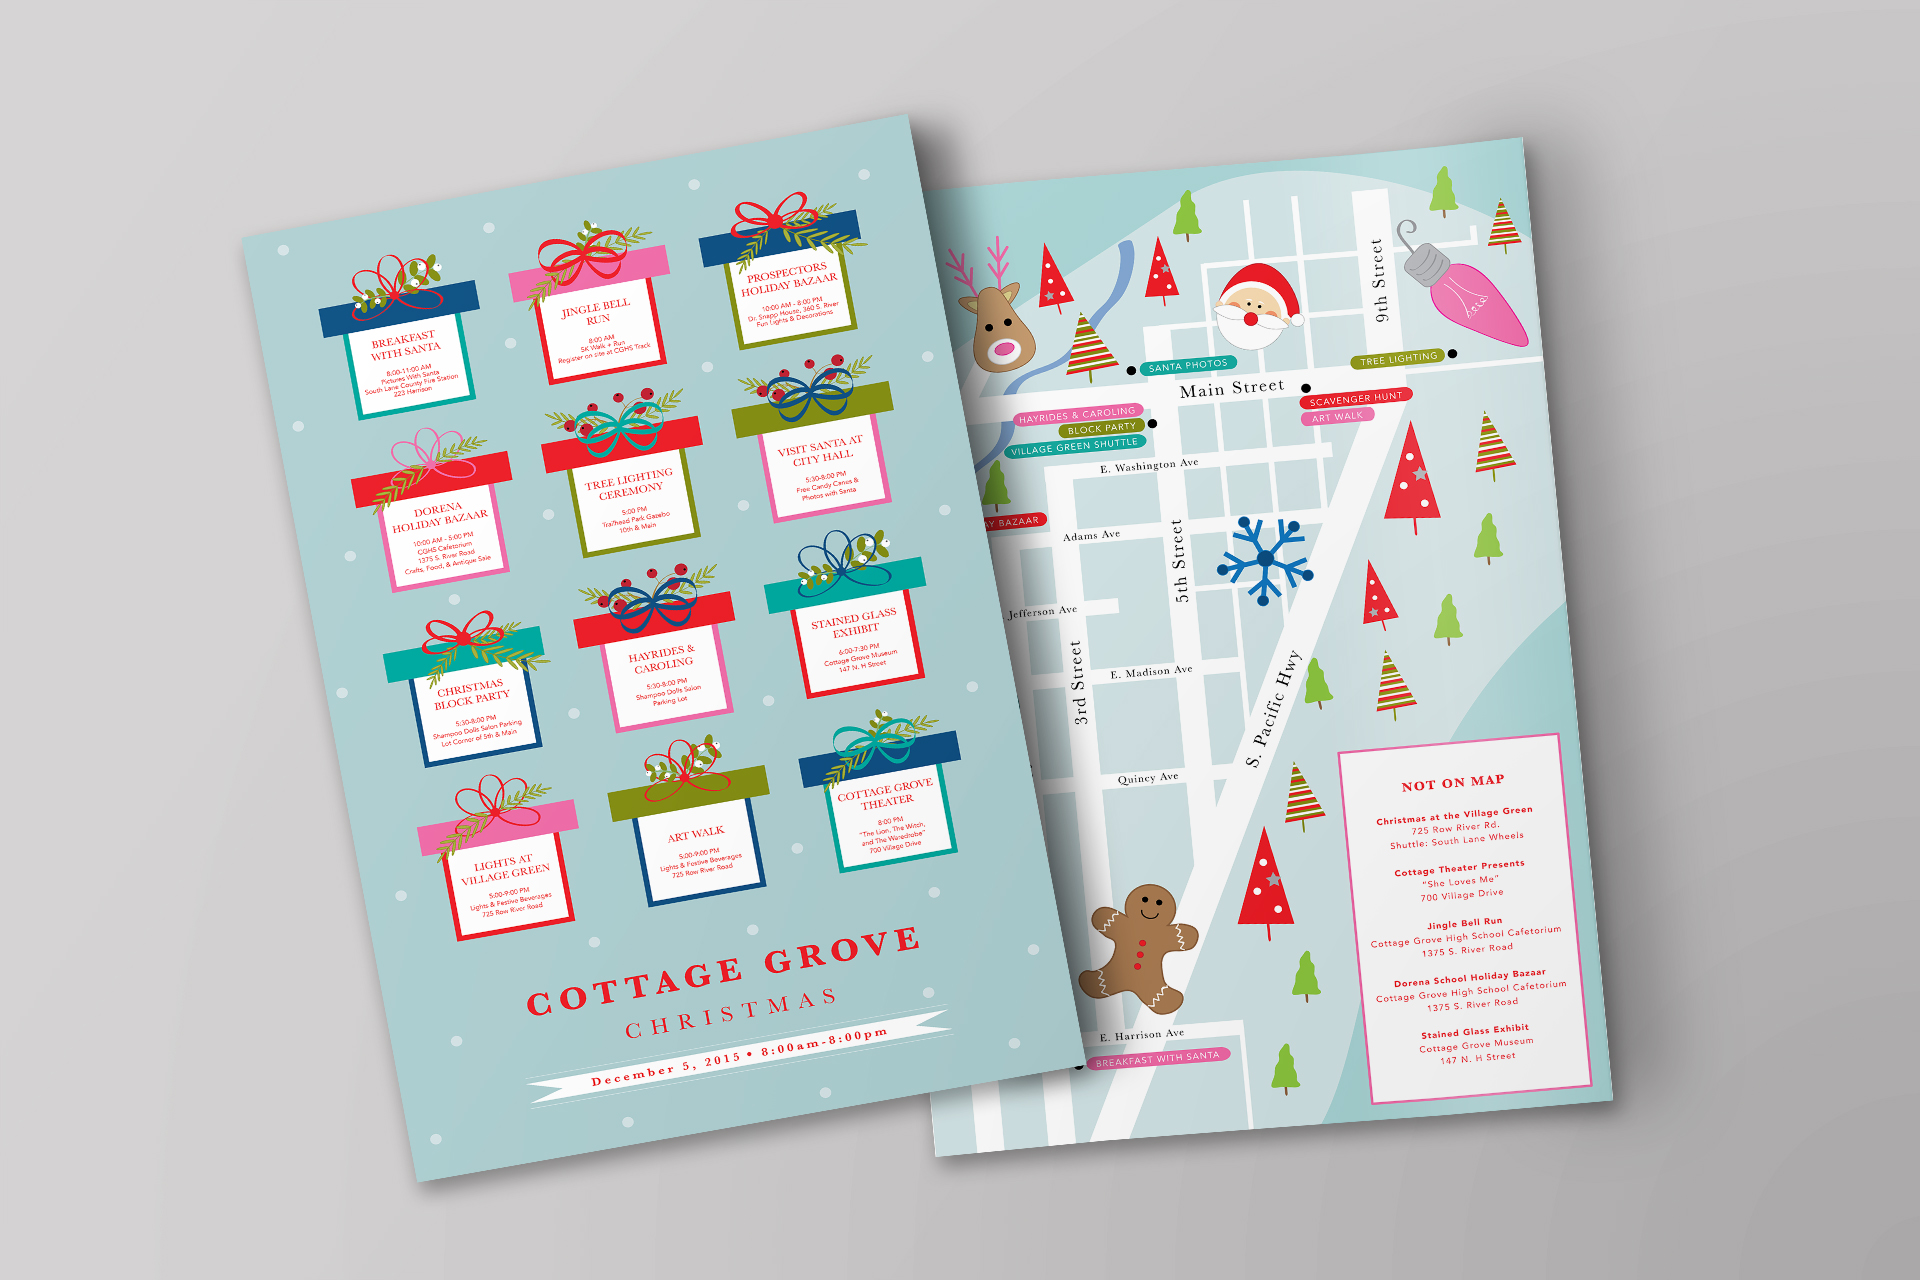 We created an open-face advent calendar to be handed out the day of Cottage Grove Christmas with names and details of events around the city.   On the back was a illustrated map of Cottage Grove to give residents of the city and surrounding areas a clear explanation of where all events were located.